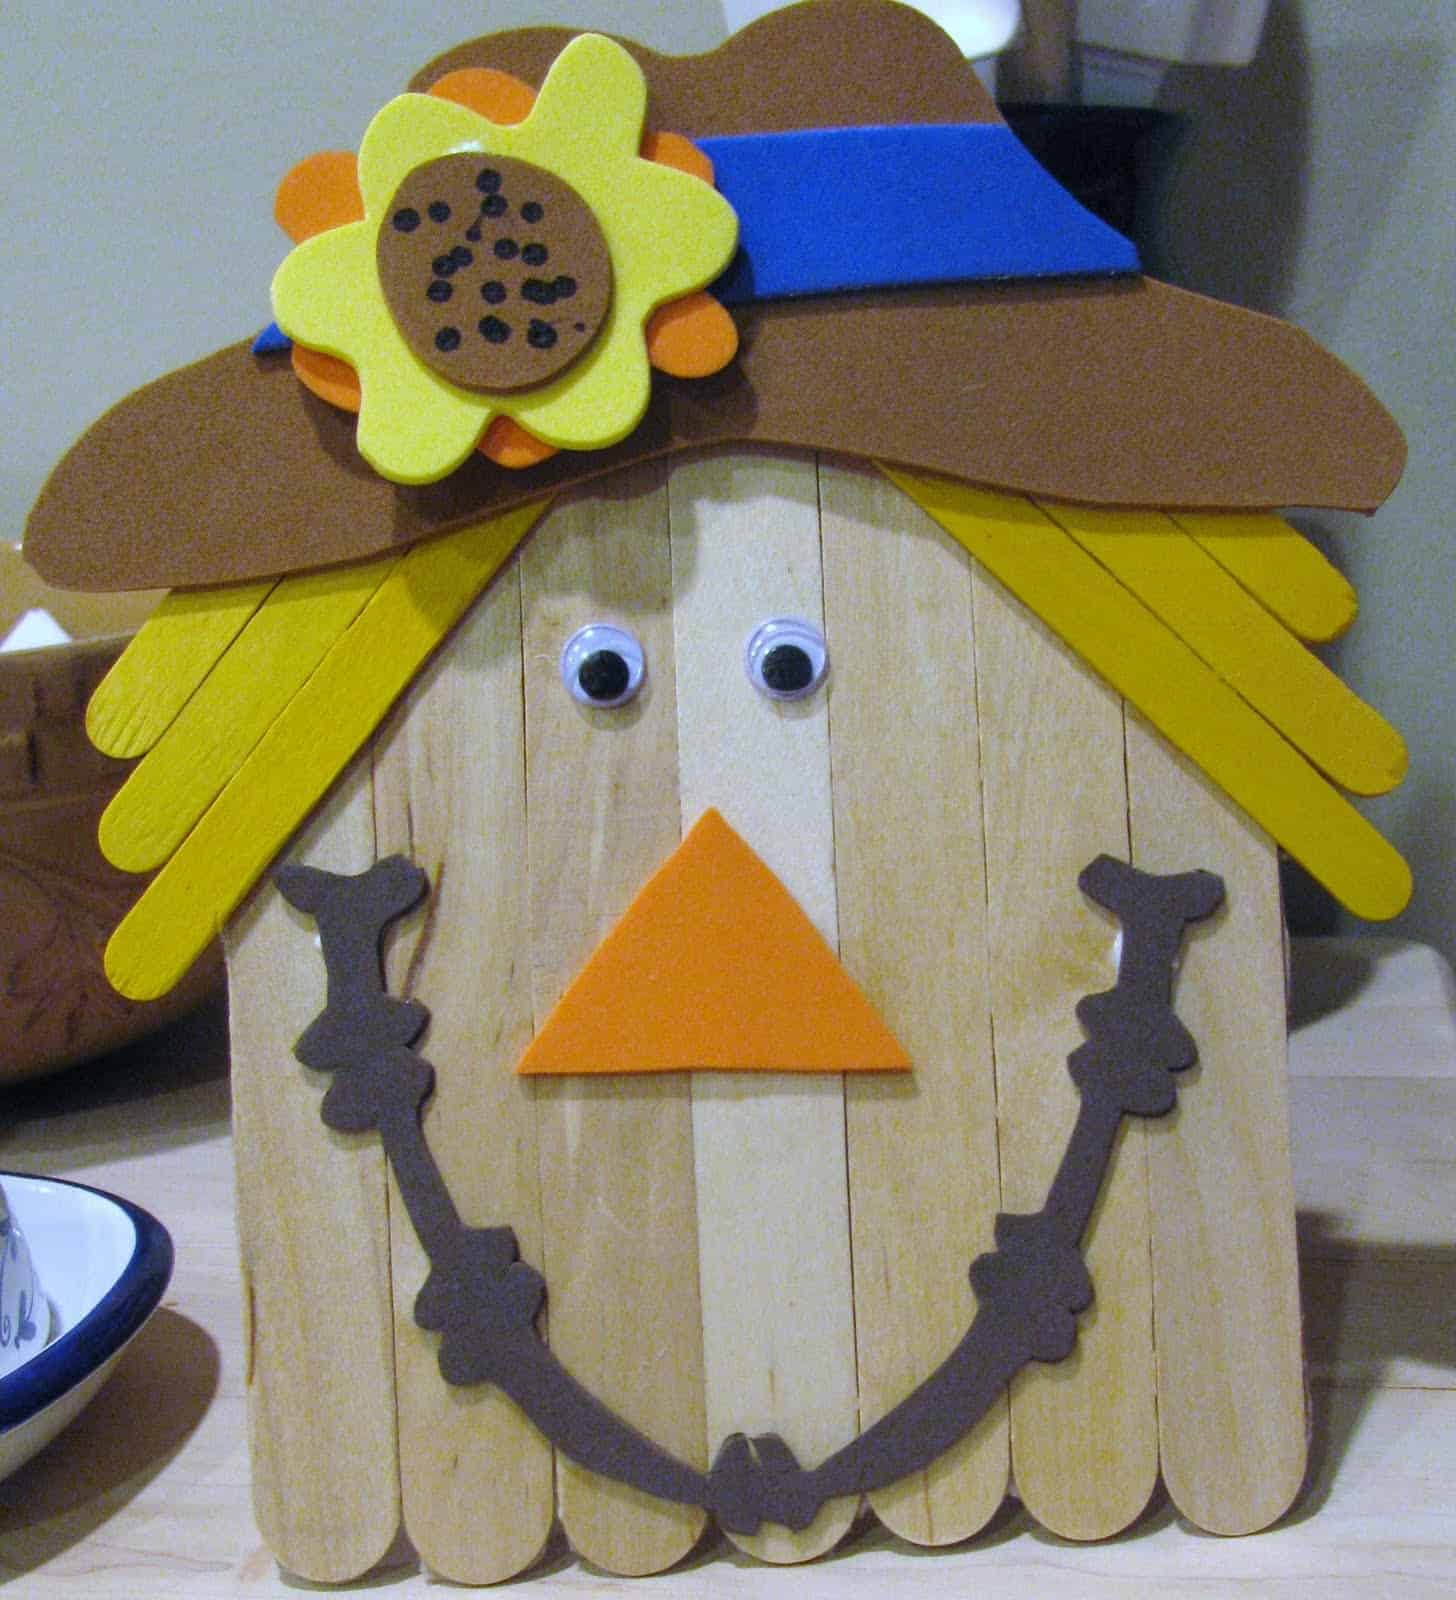 Popsicle stick and foam paper scarecrows